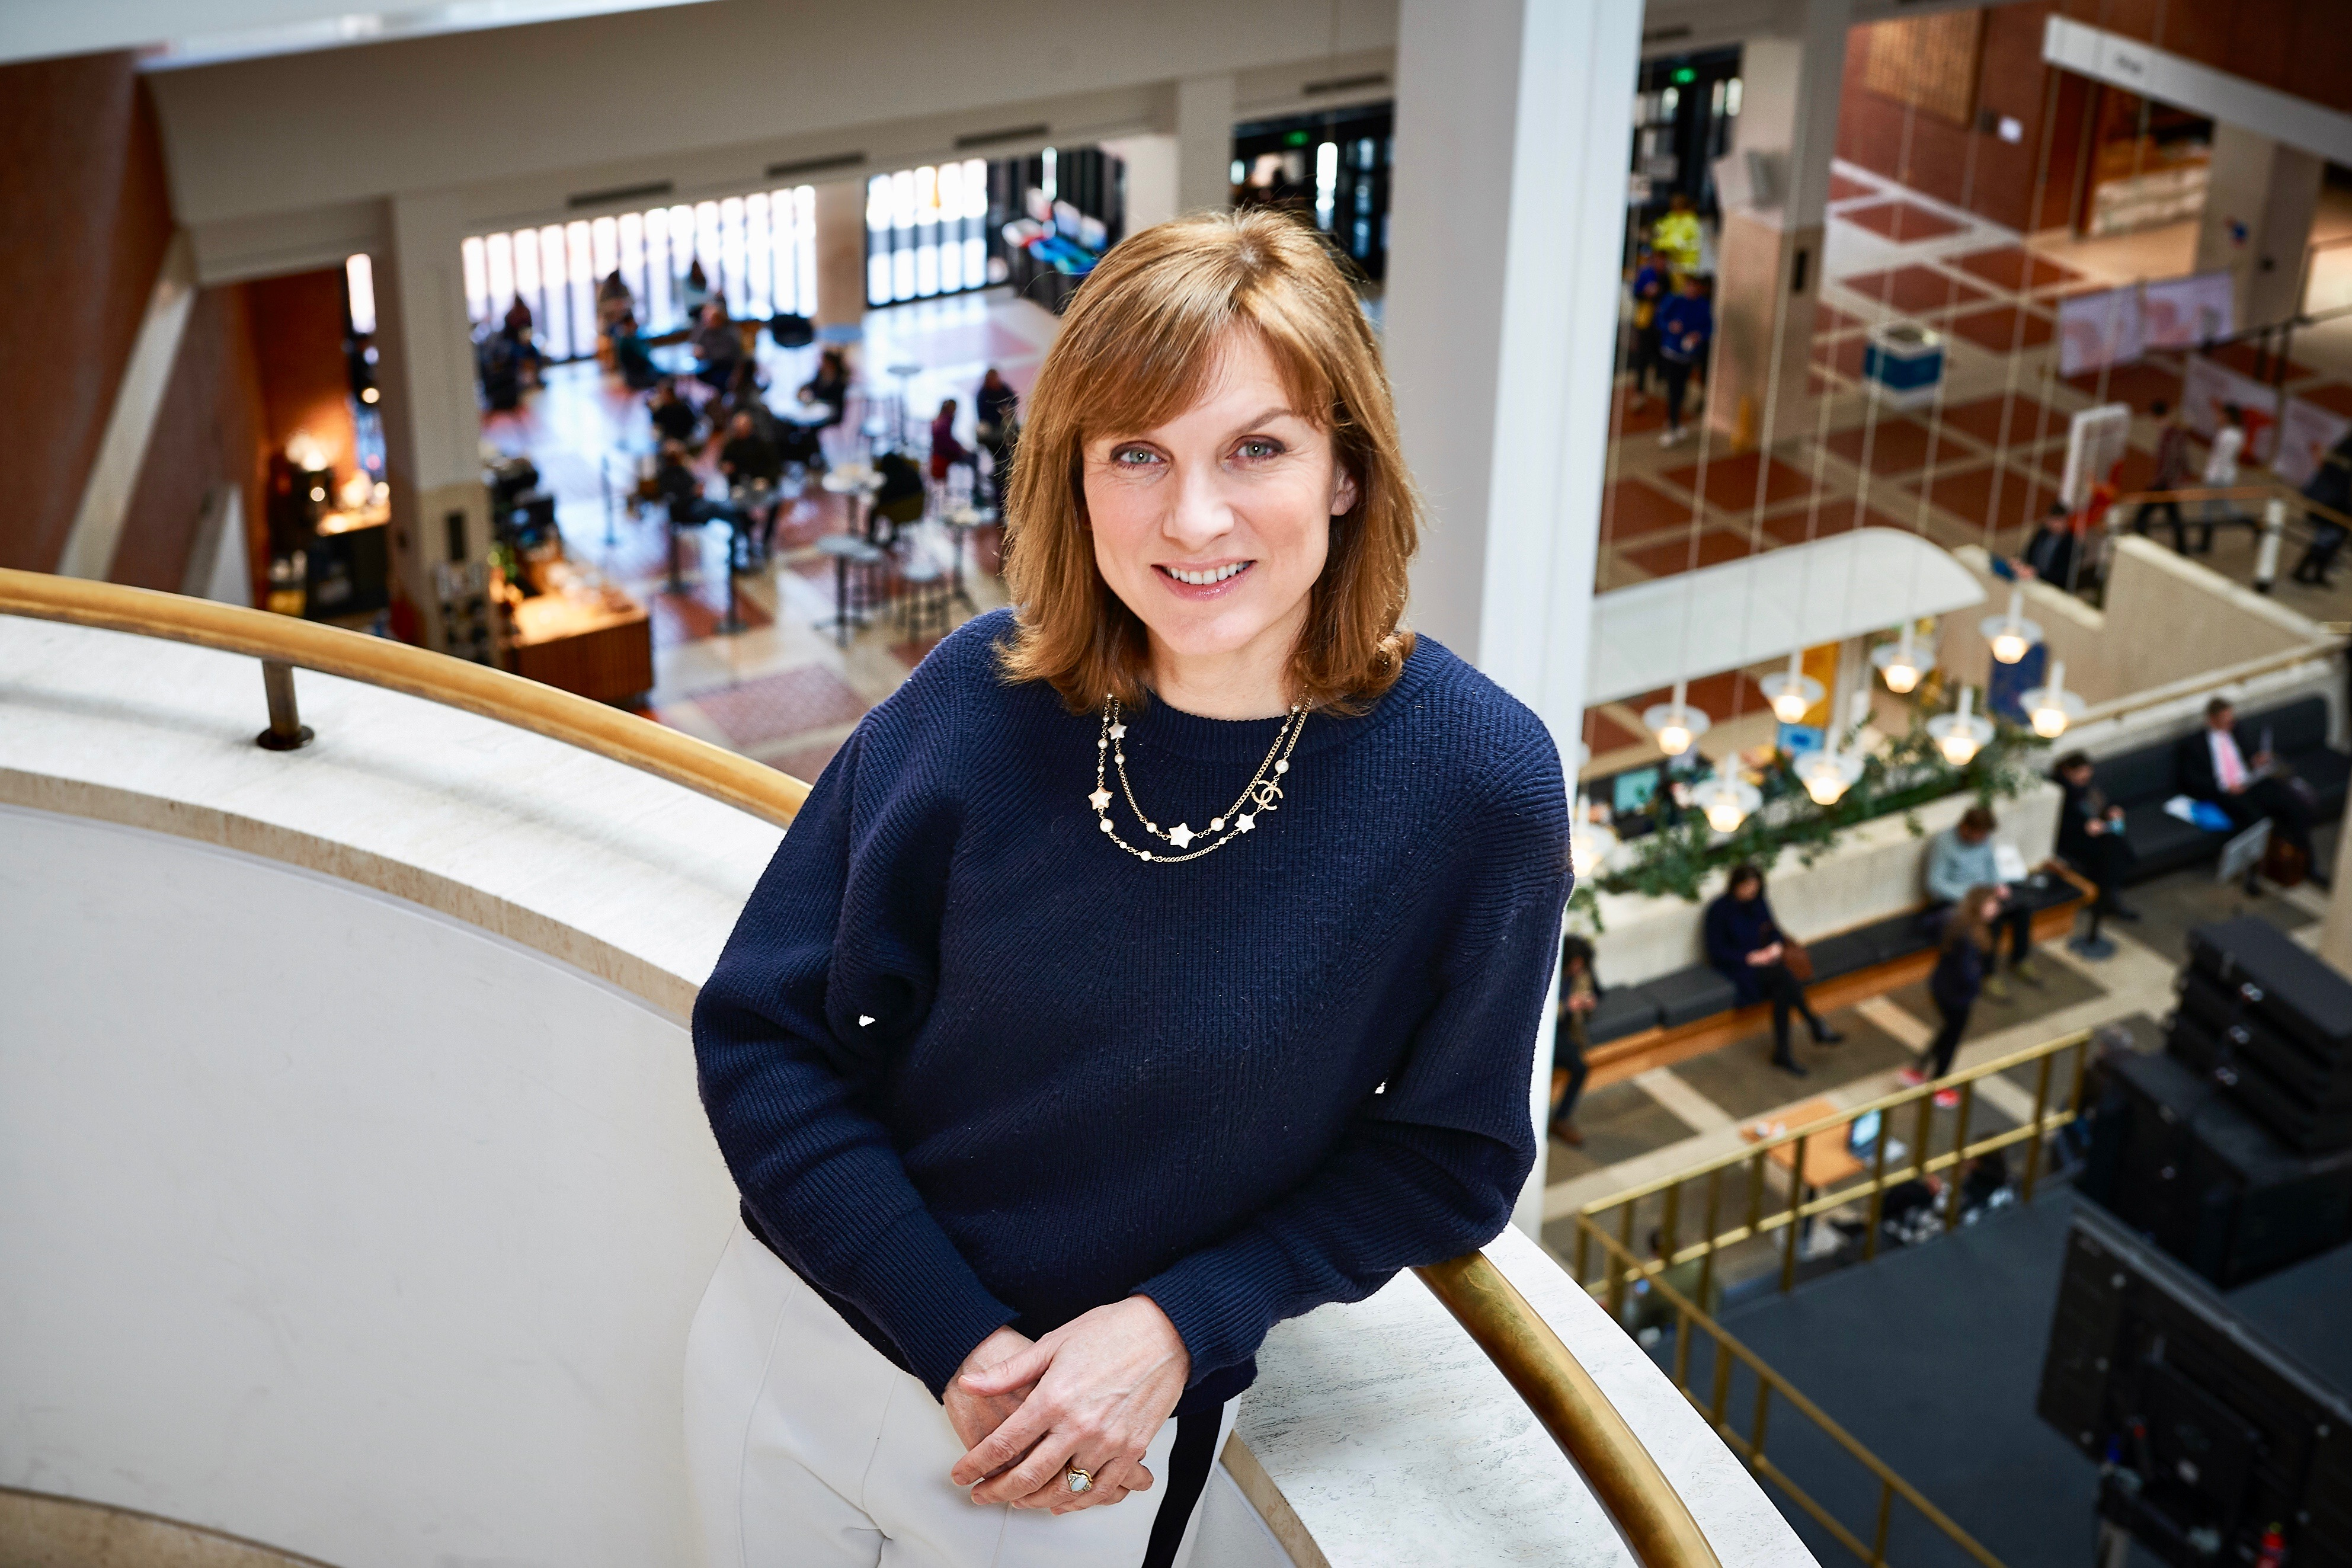 Fiona Bruce at the British Library